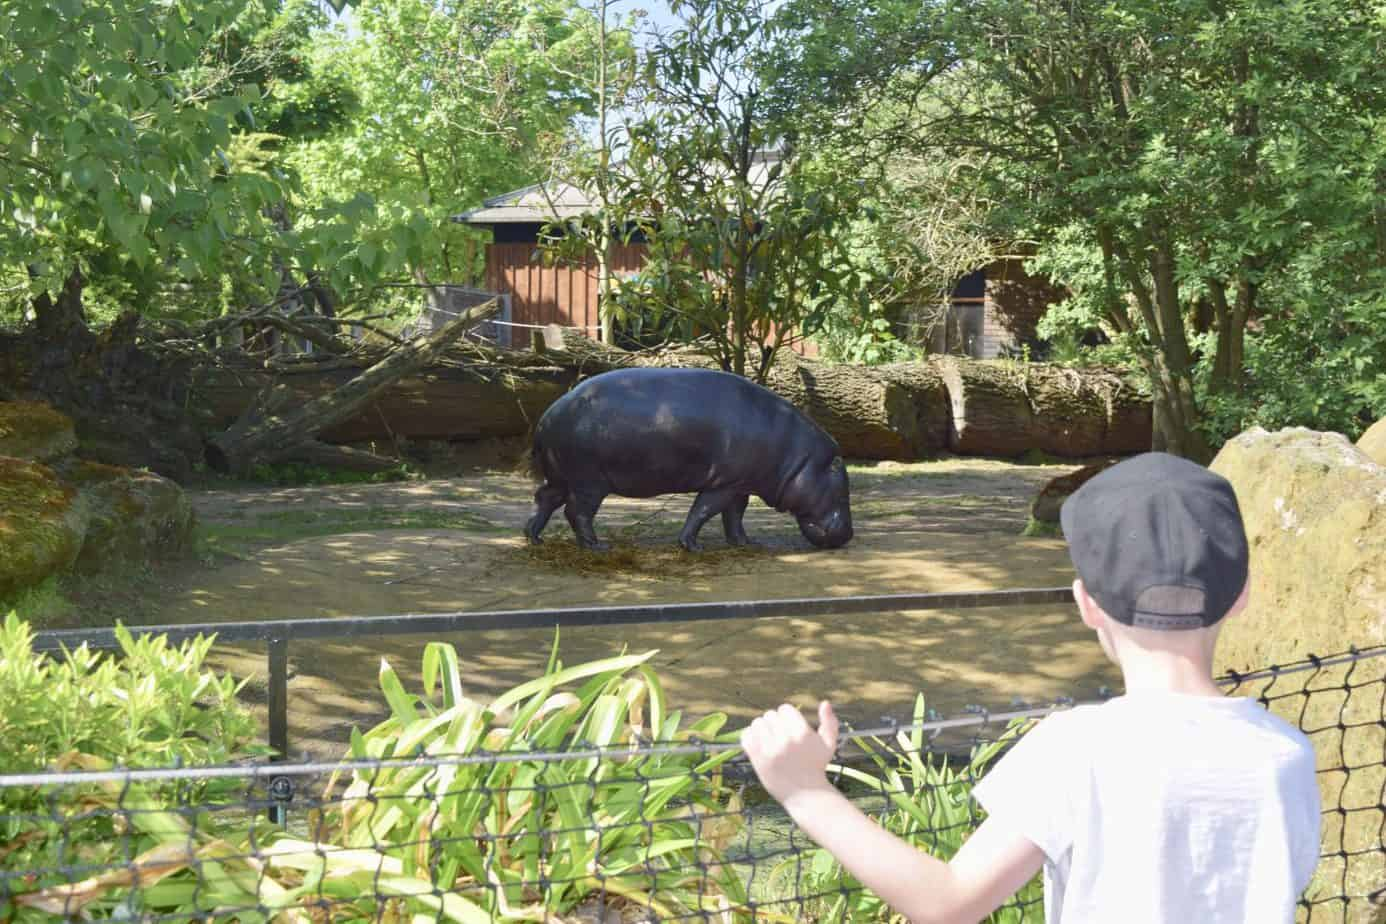 B looking at a Hippo at London Zoo